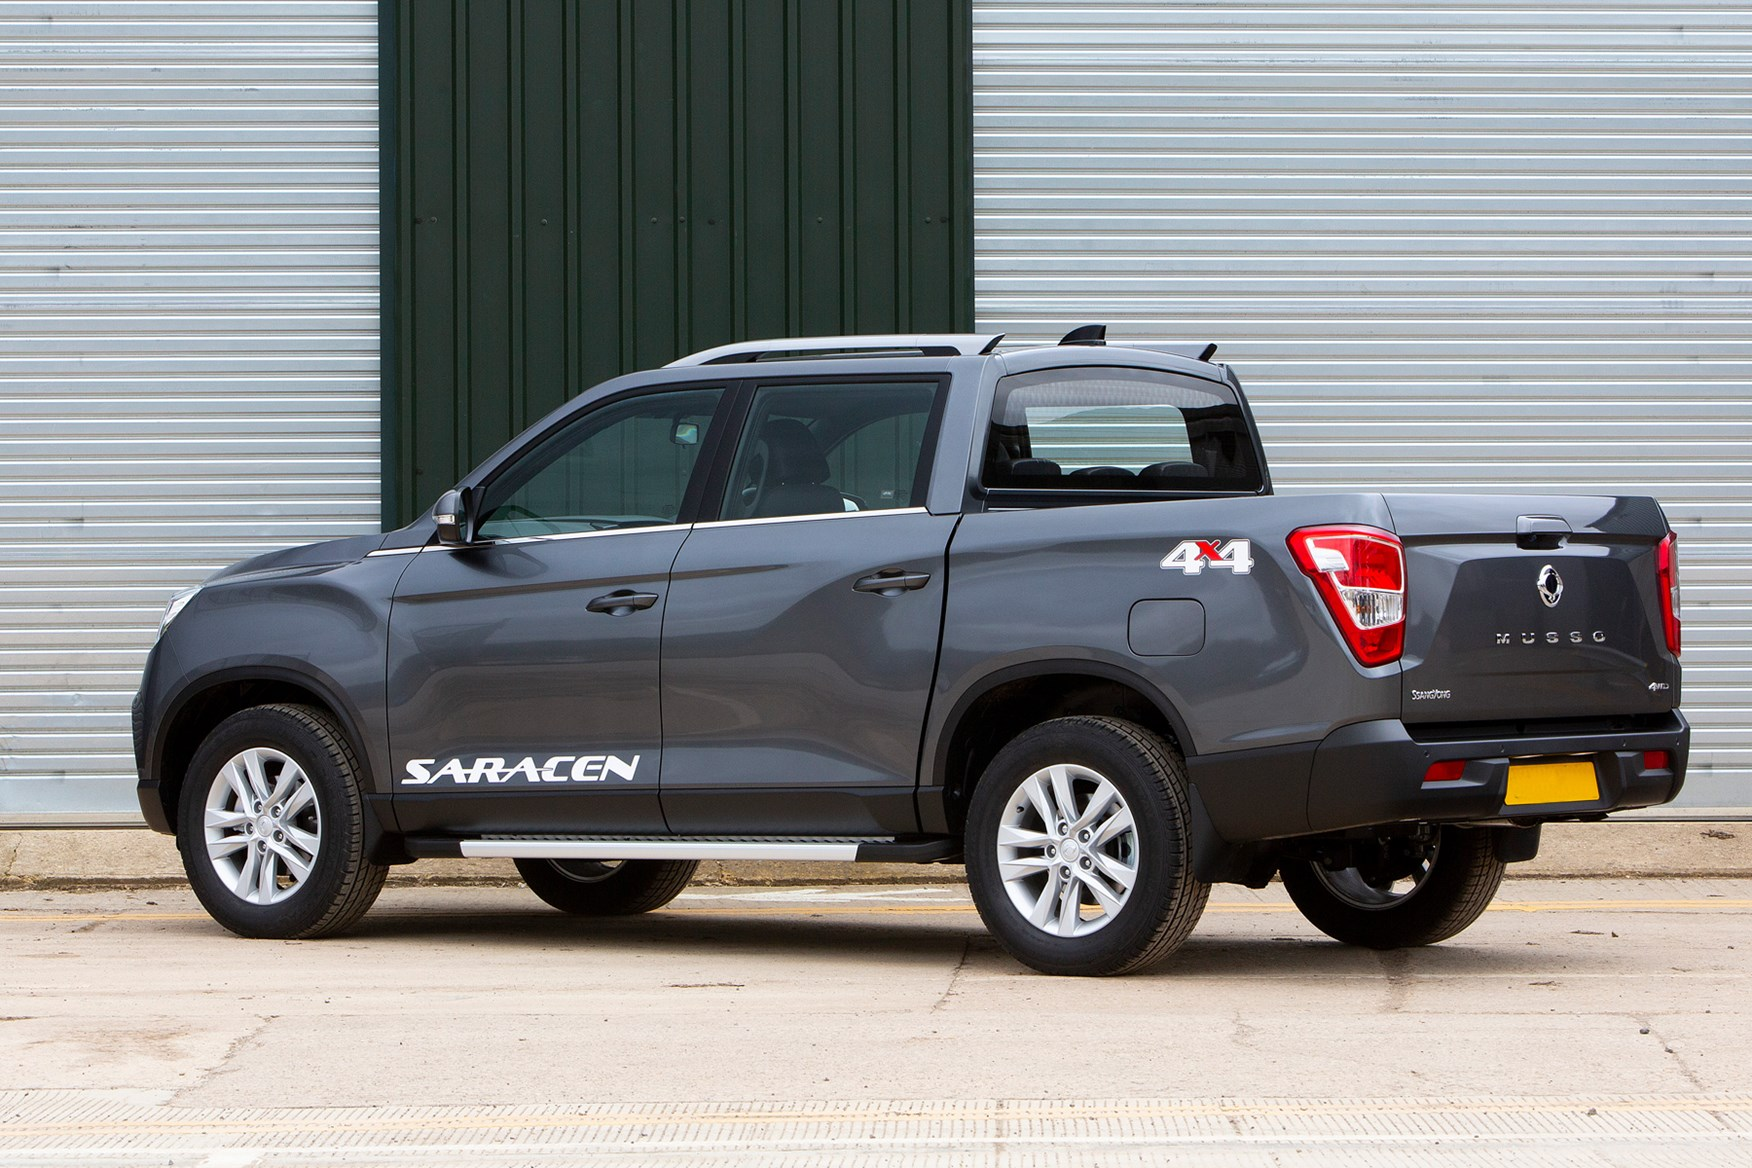 SsangYong Musso review, 2020, Saracen, grey, rear view